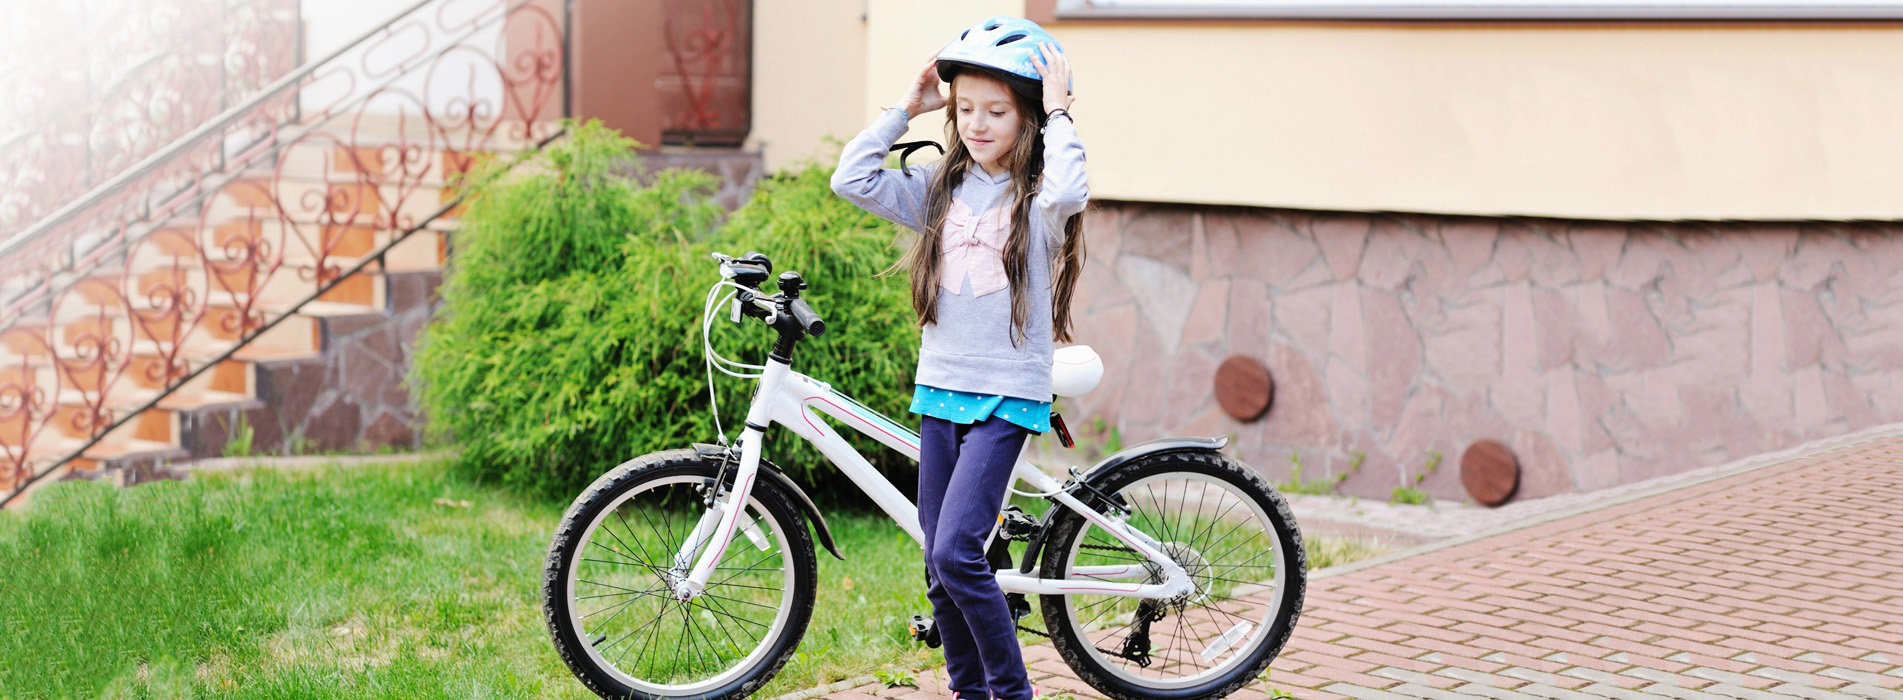 childrens cycle helmet c07